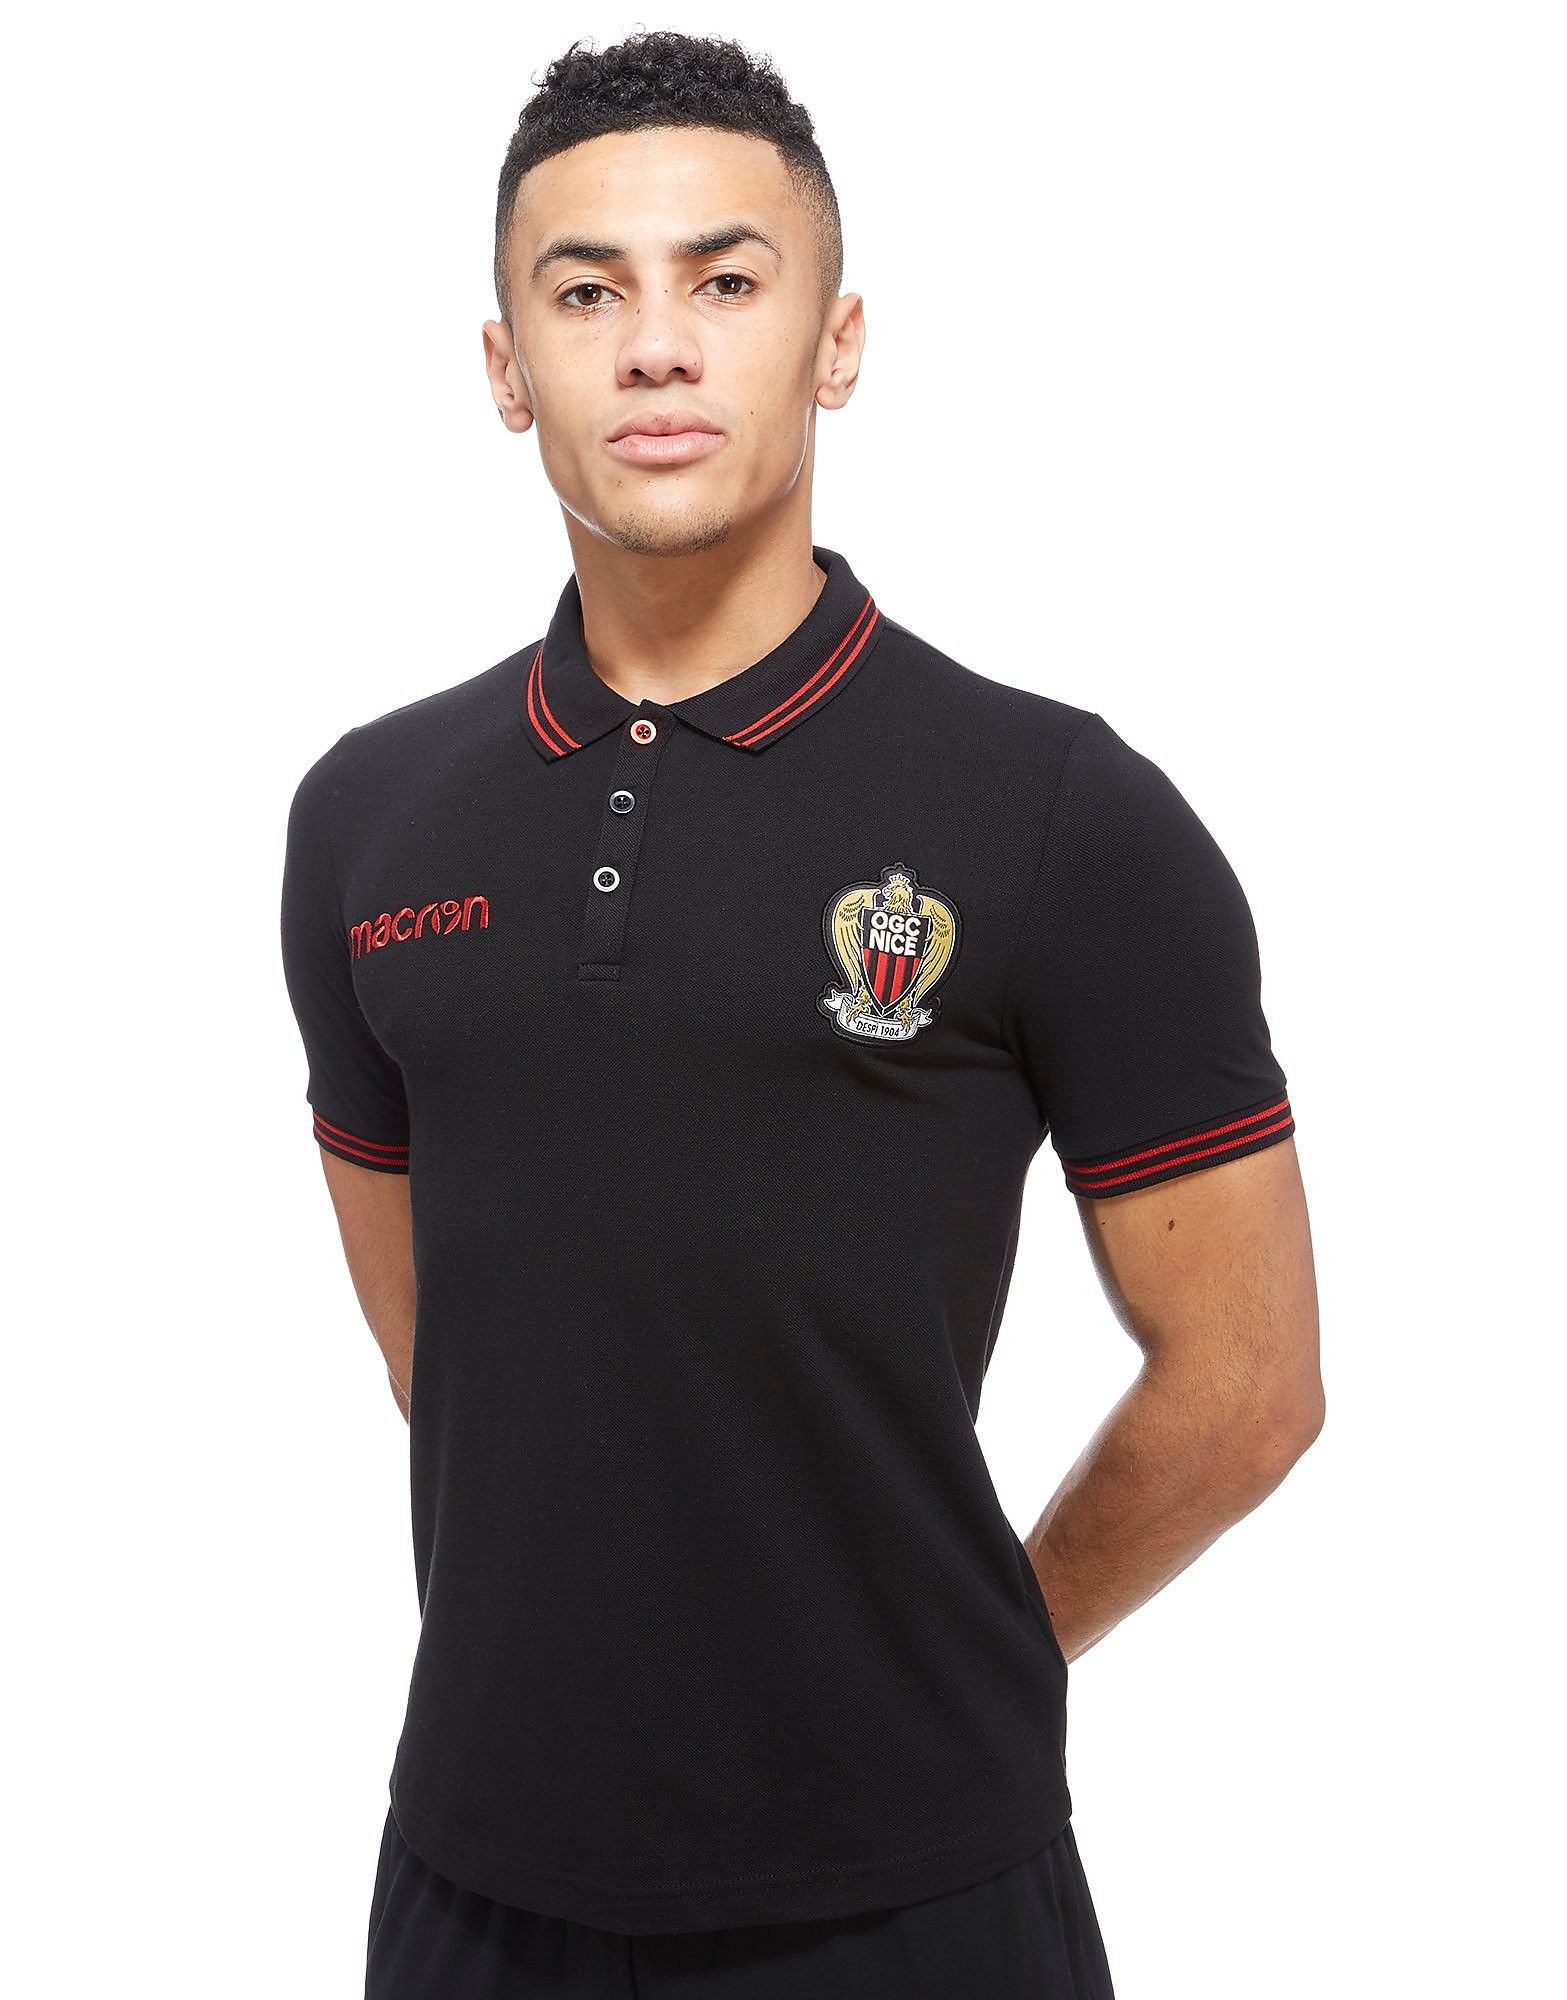 Macron OGC Nice 2017/18 Polo T-Shirt - Black/Red, Black/Red